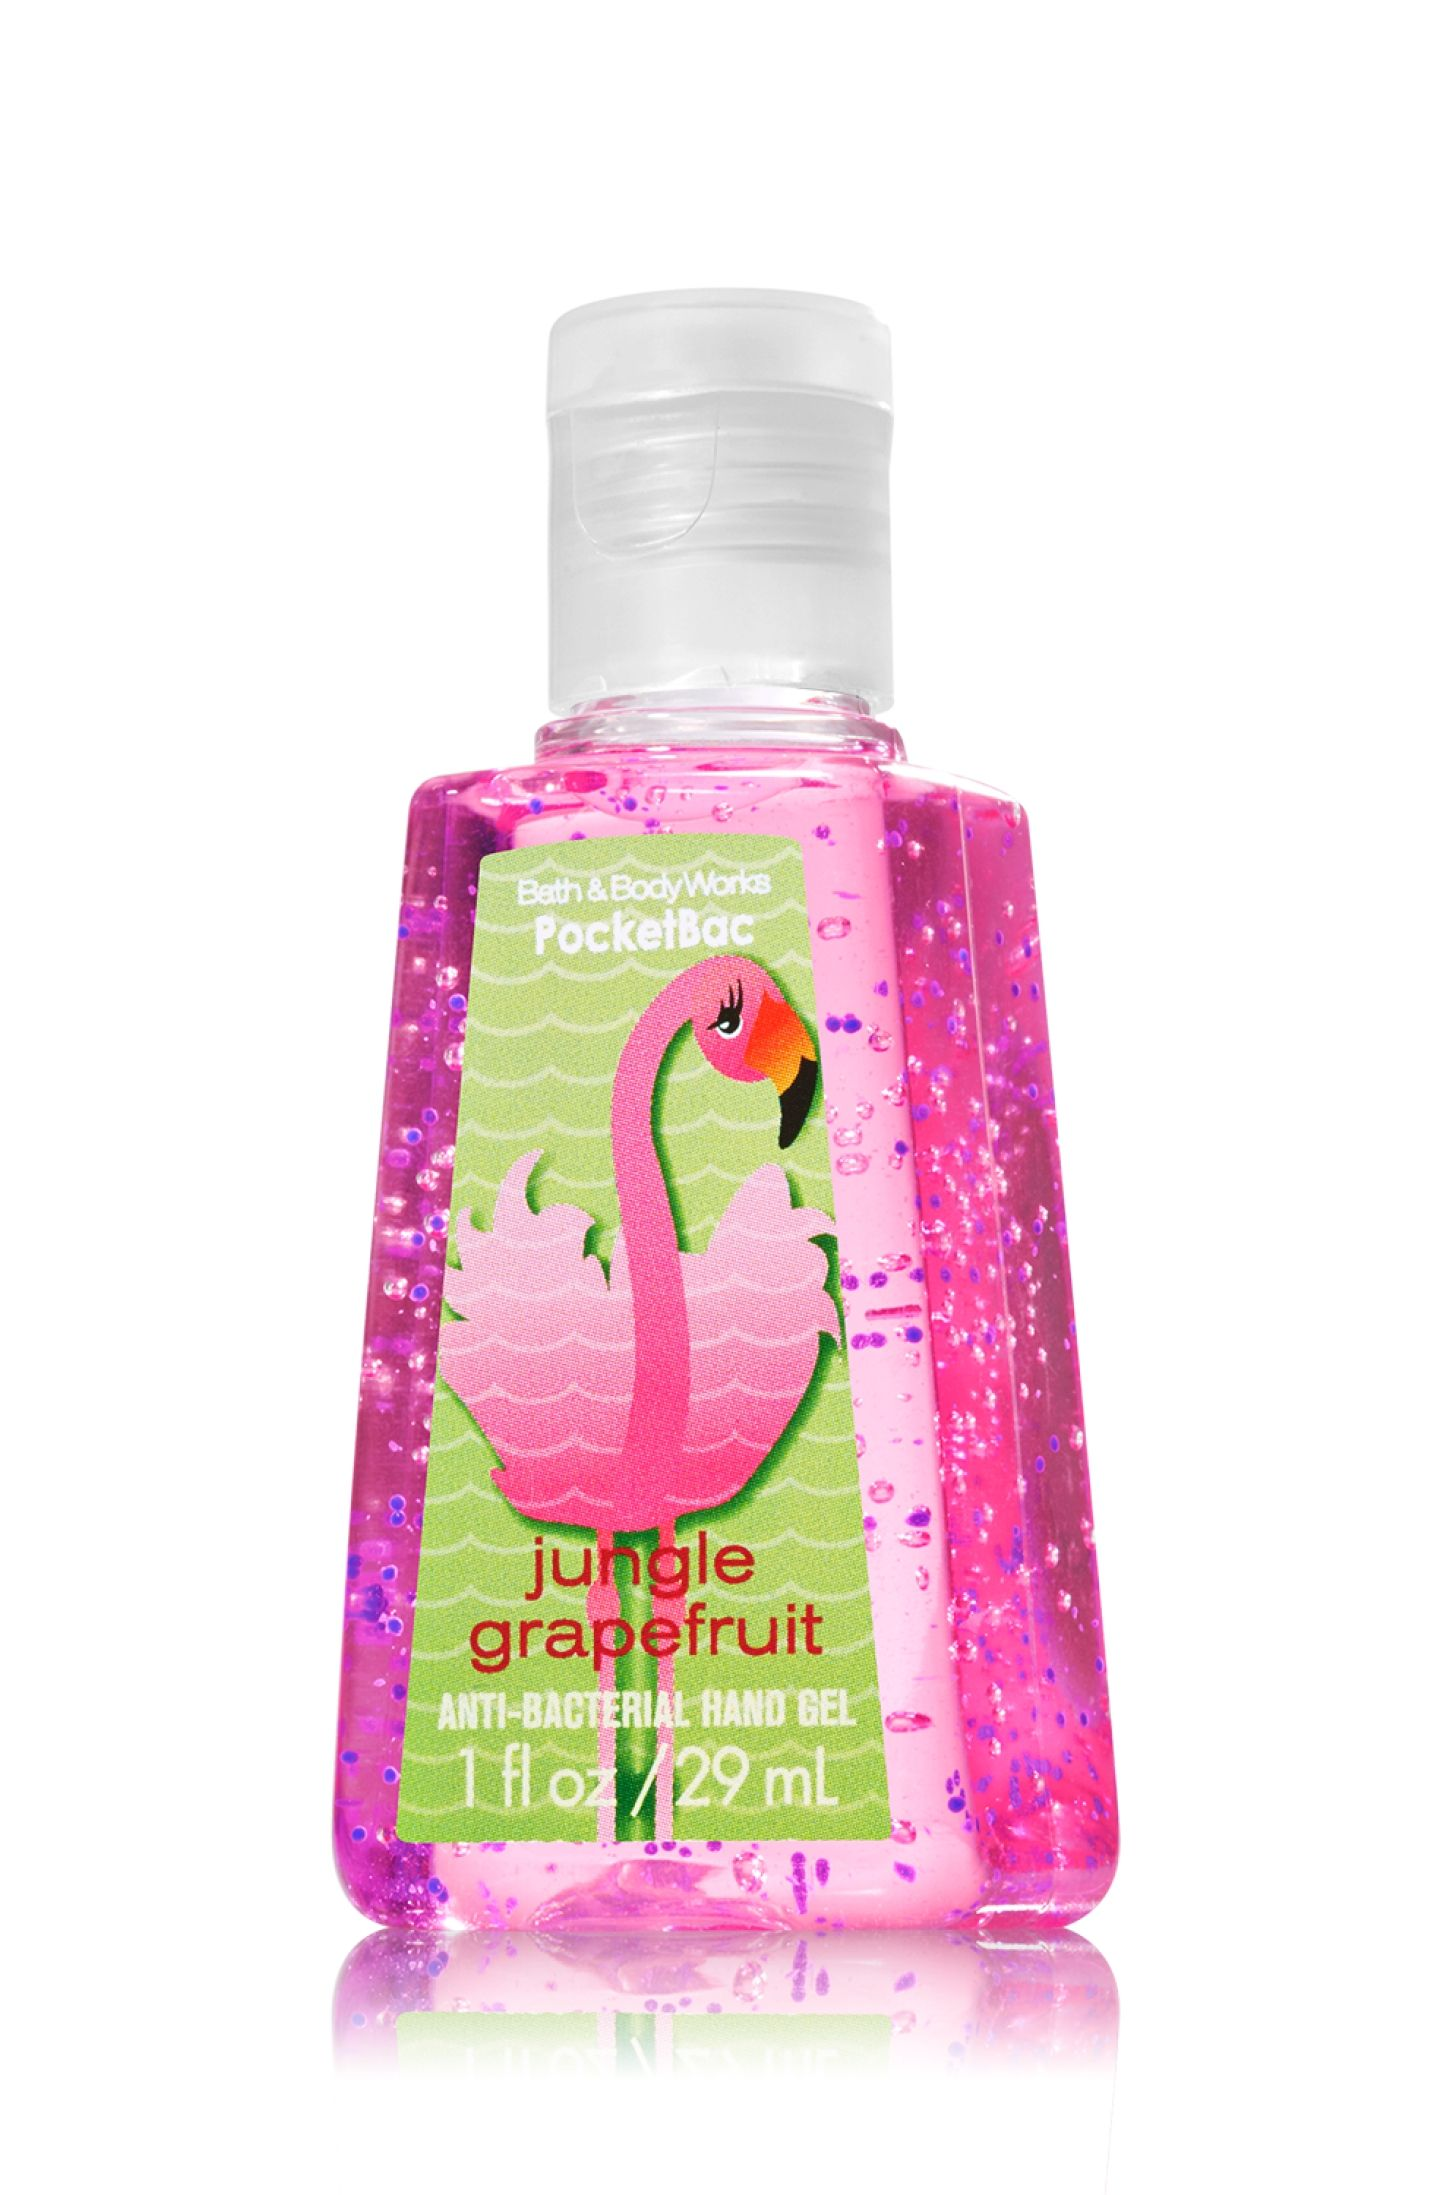 Jungle Grapefruit Bath Body Works Pocketbac Sanitizing Hand Gel